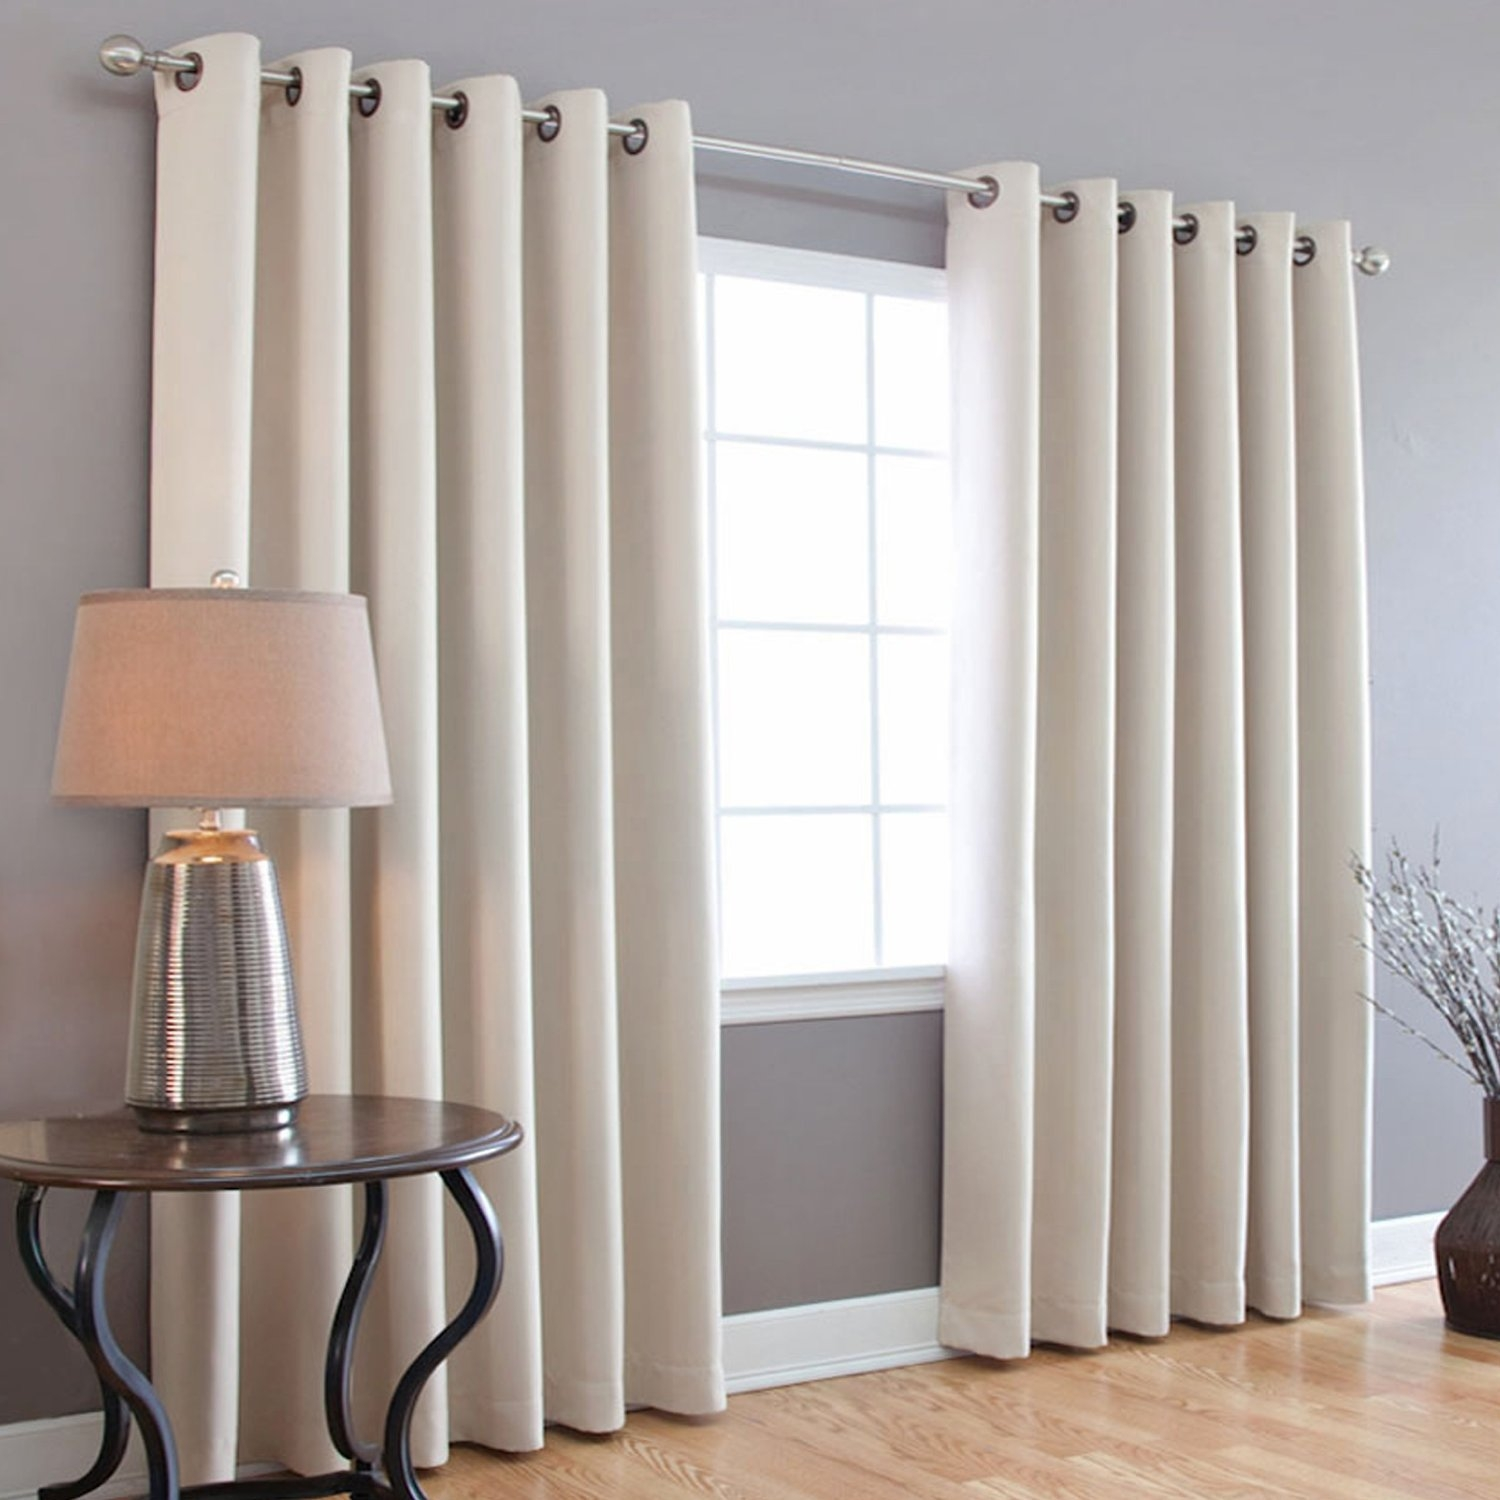 Blackout Curtains Guide With Grommets Jcpenney For Sliding Glass Within Plain White Blackout Curtains (Image 4 of 15)